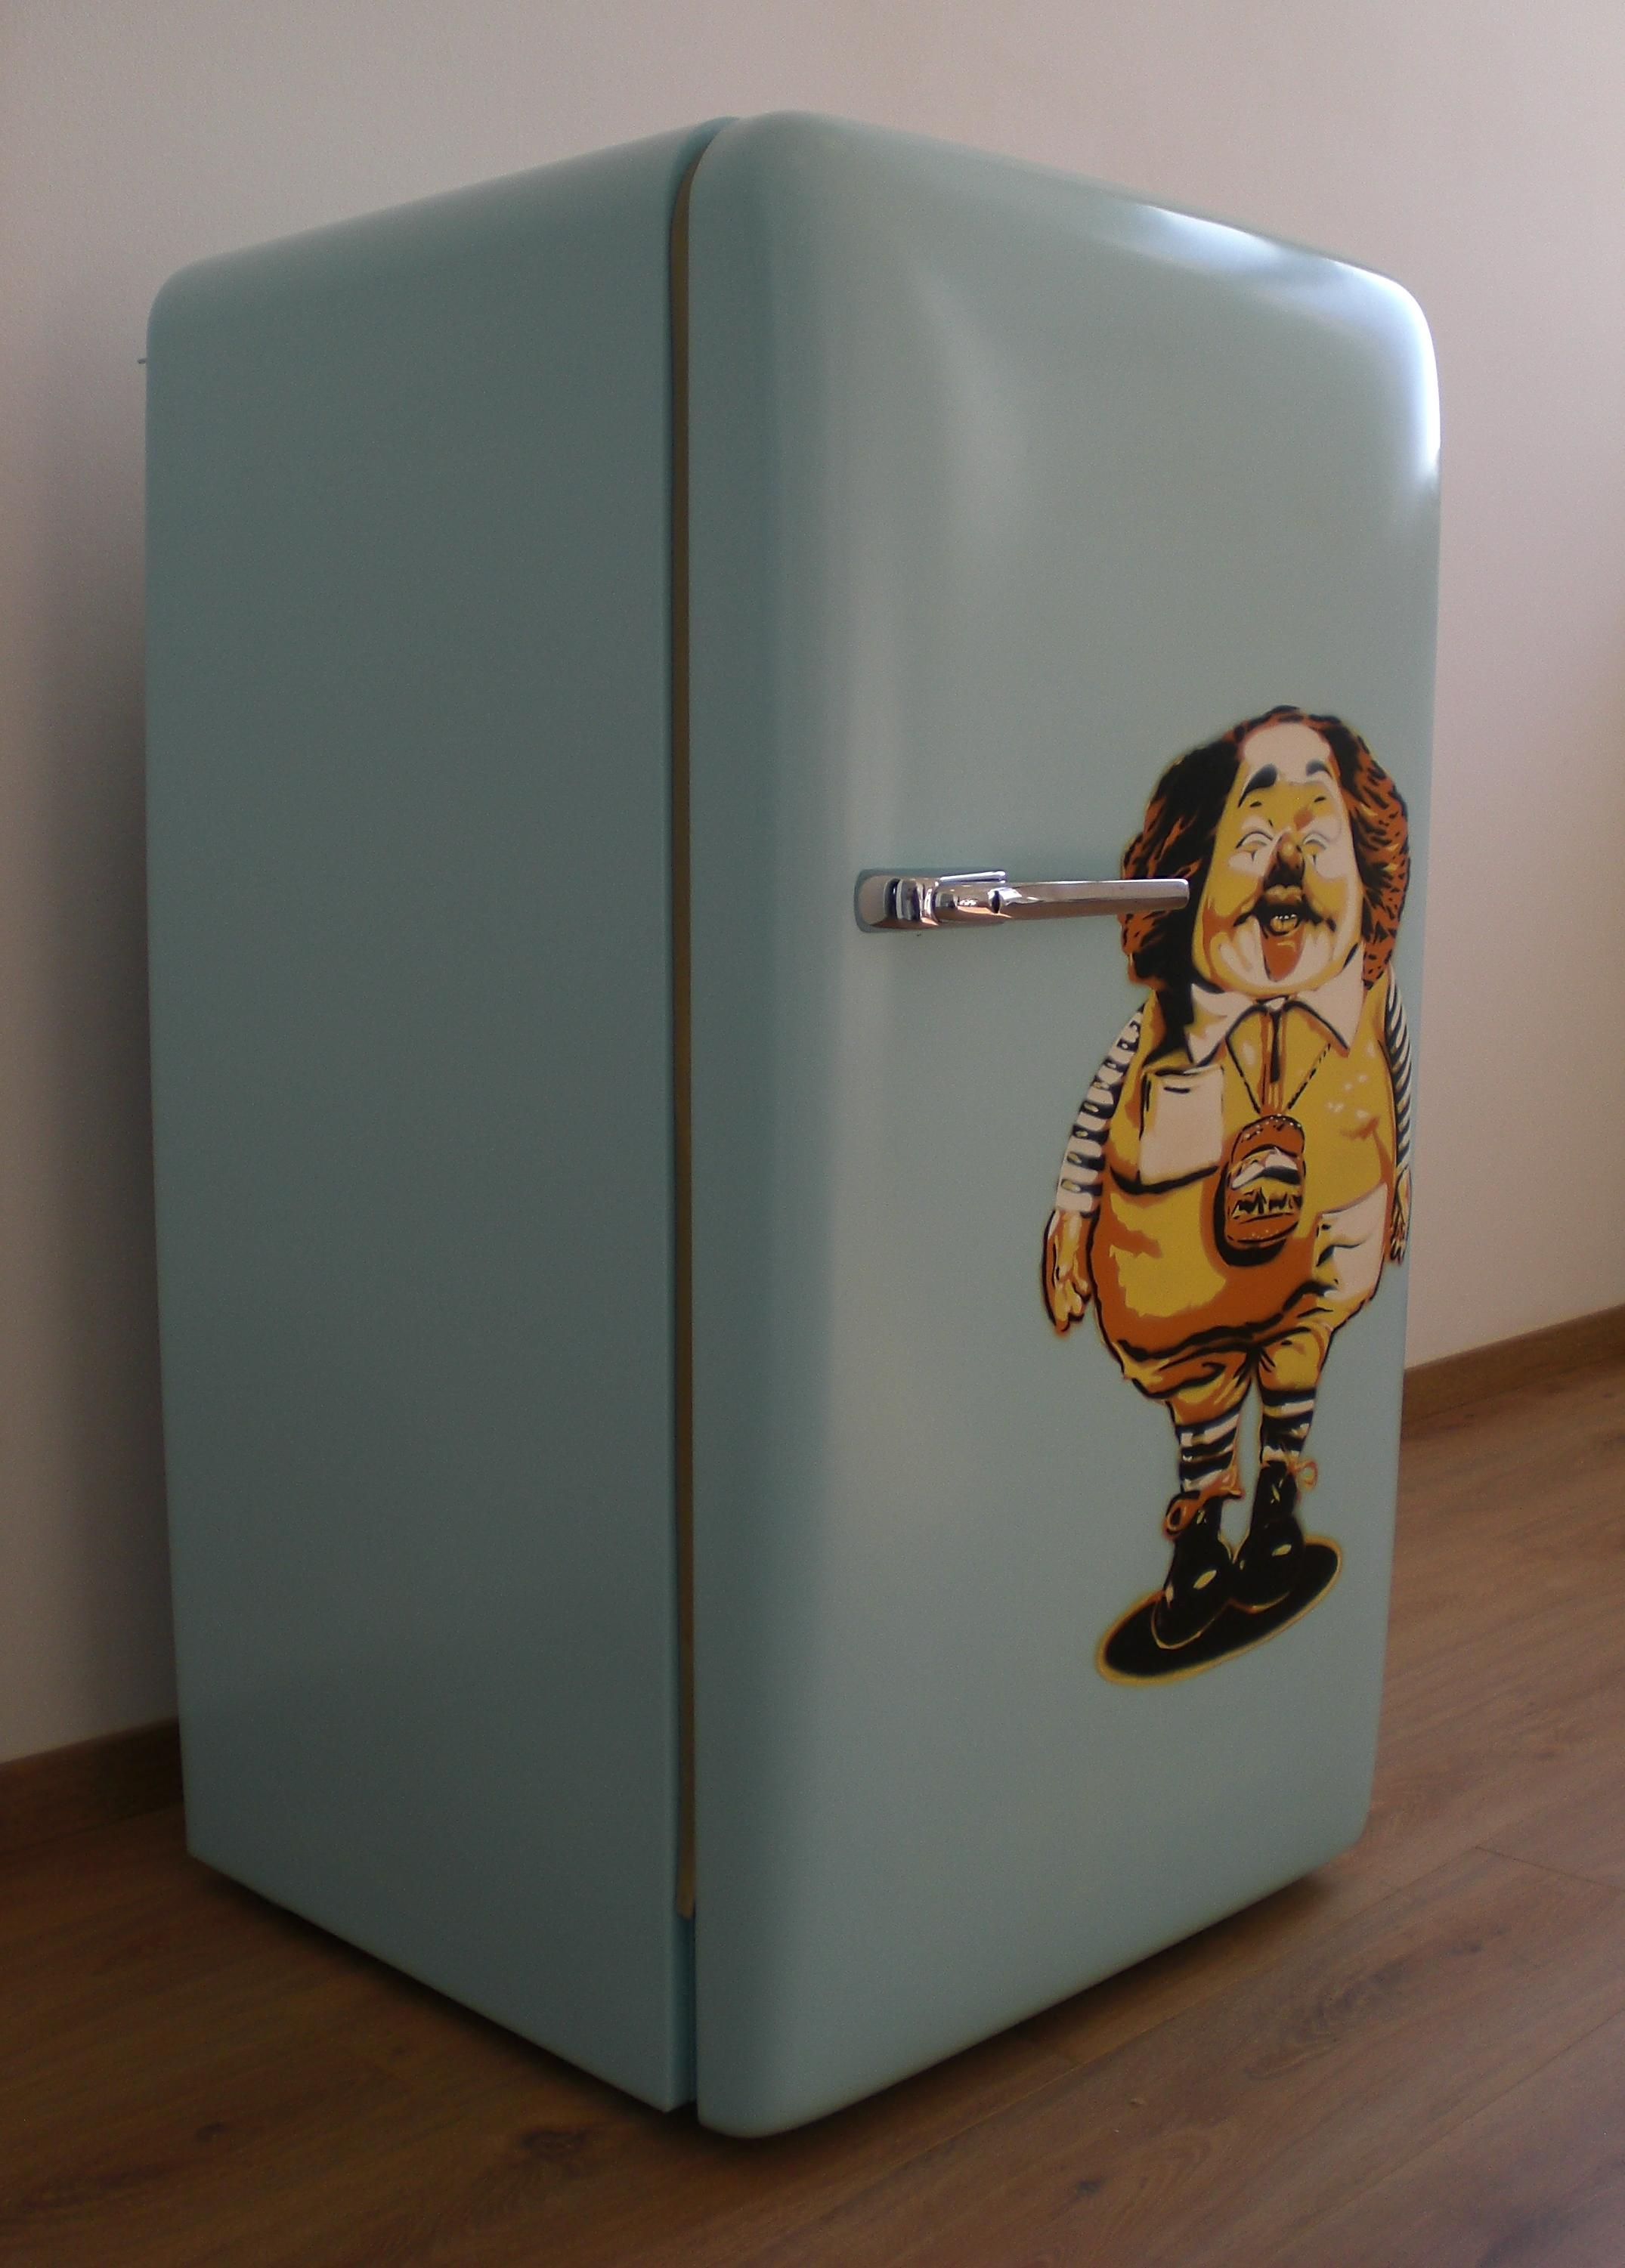 2nd Life Fridge – Burger Boy - Upcycling-Projekt #kühlschrank #upcycling ©colourform